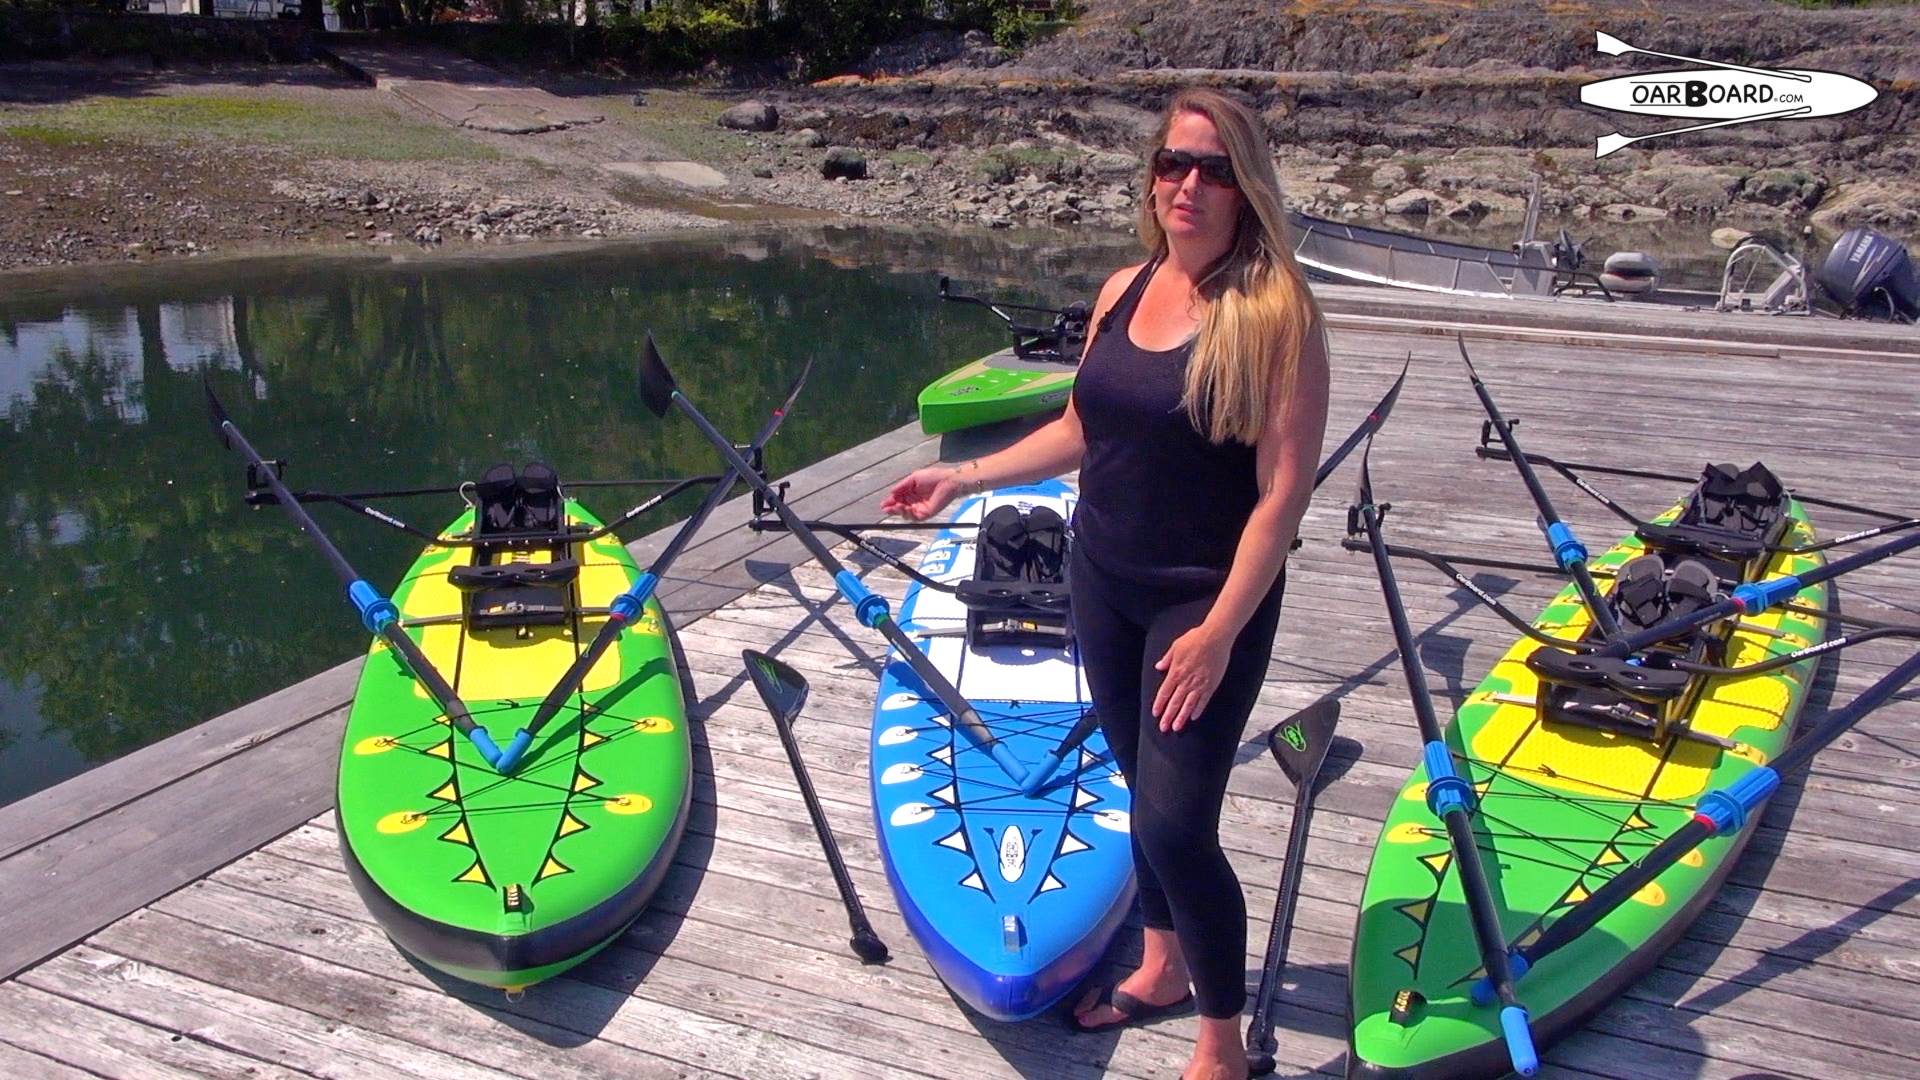 Diana-Lesieur-SUP-Advenutre-Fitness-Stand-up-Paddle-Boards